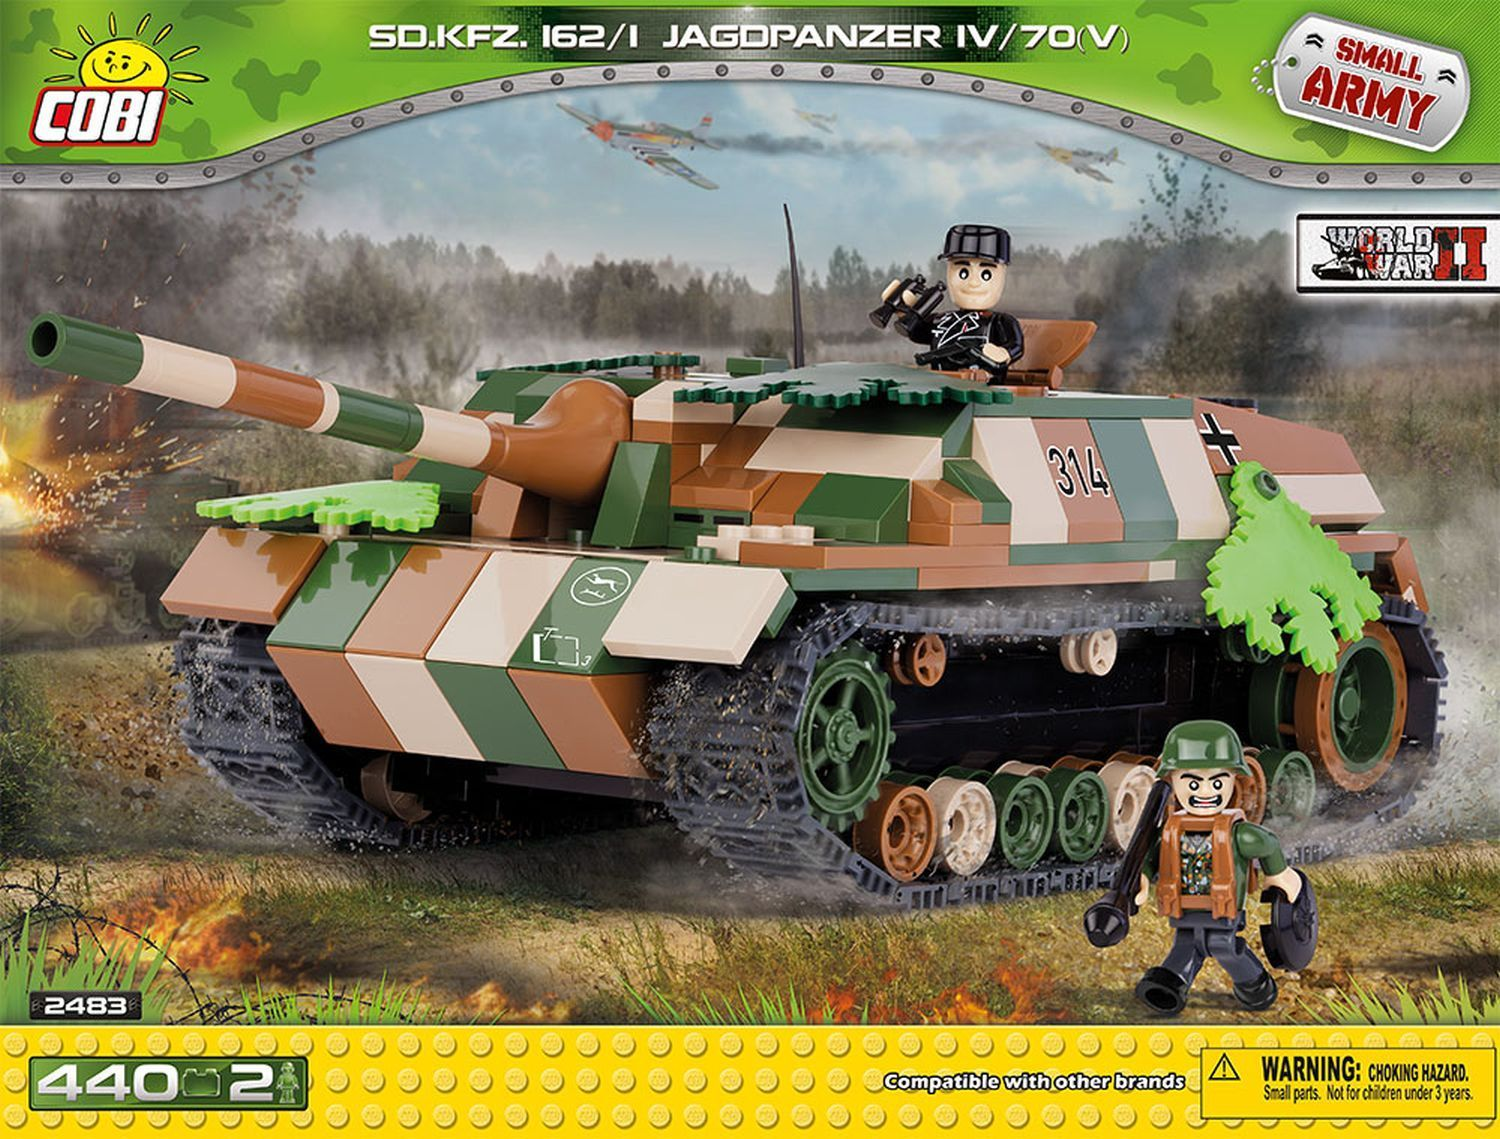 2483_Cobi_2.WK_Jagdpanzer_IV_www-super-bricks.de_1_Cobi_2.WK_www-super-bricks.de